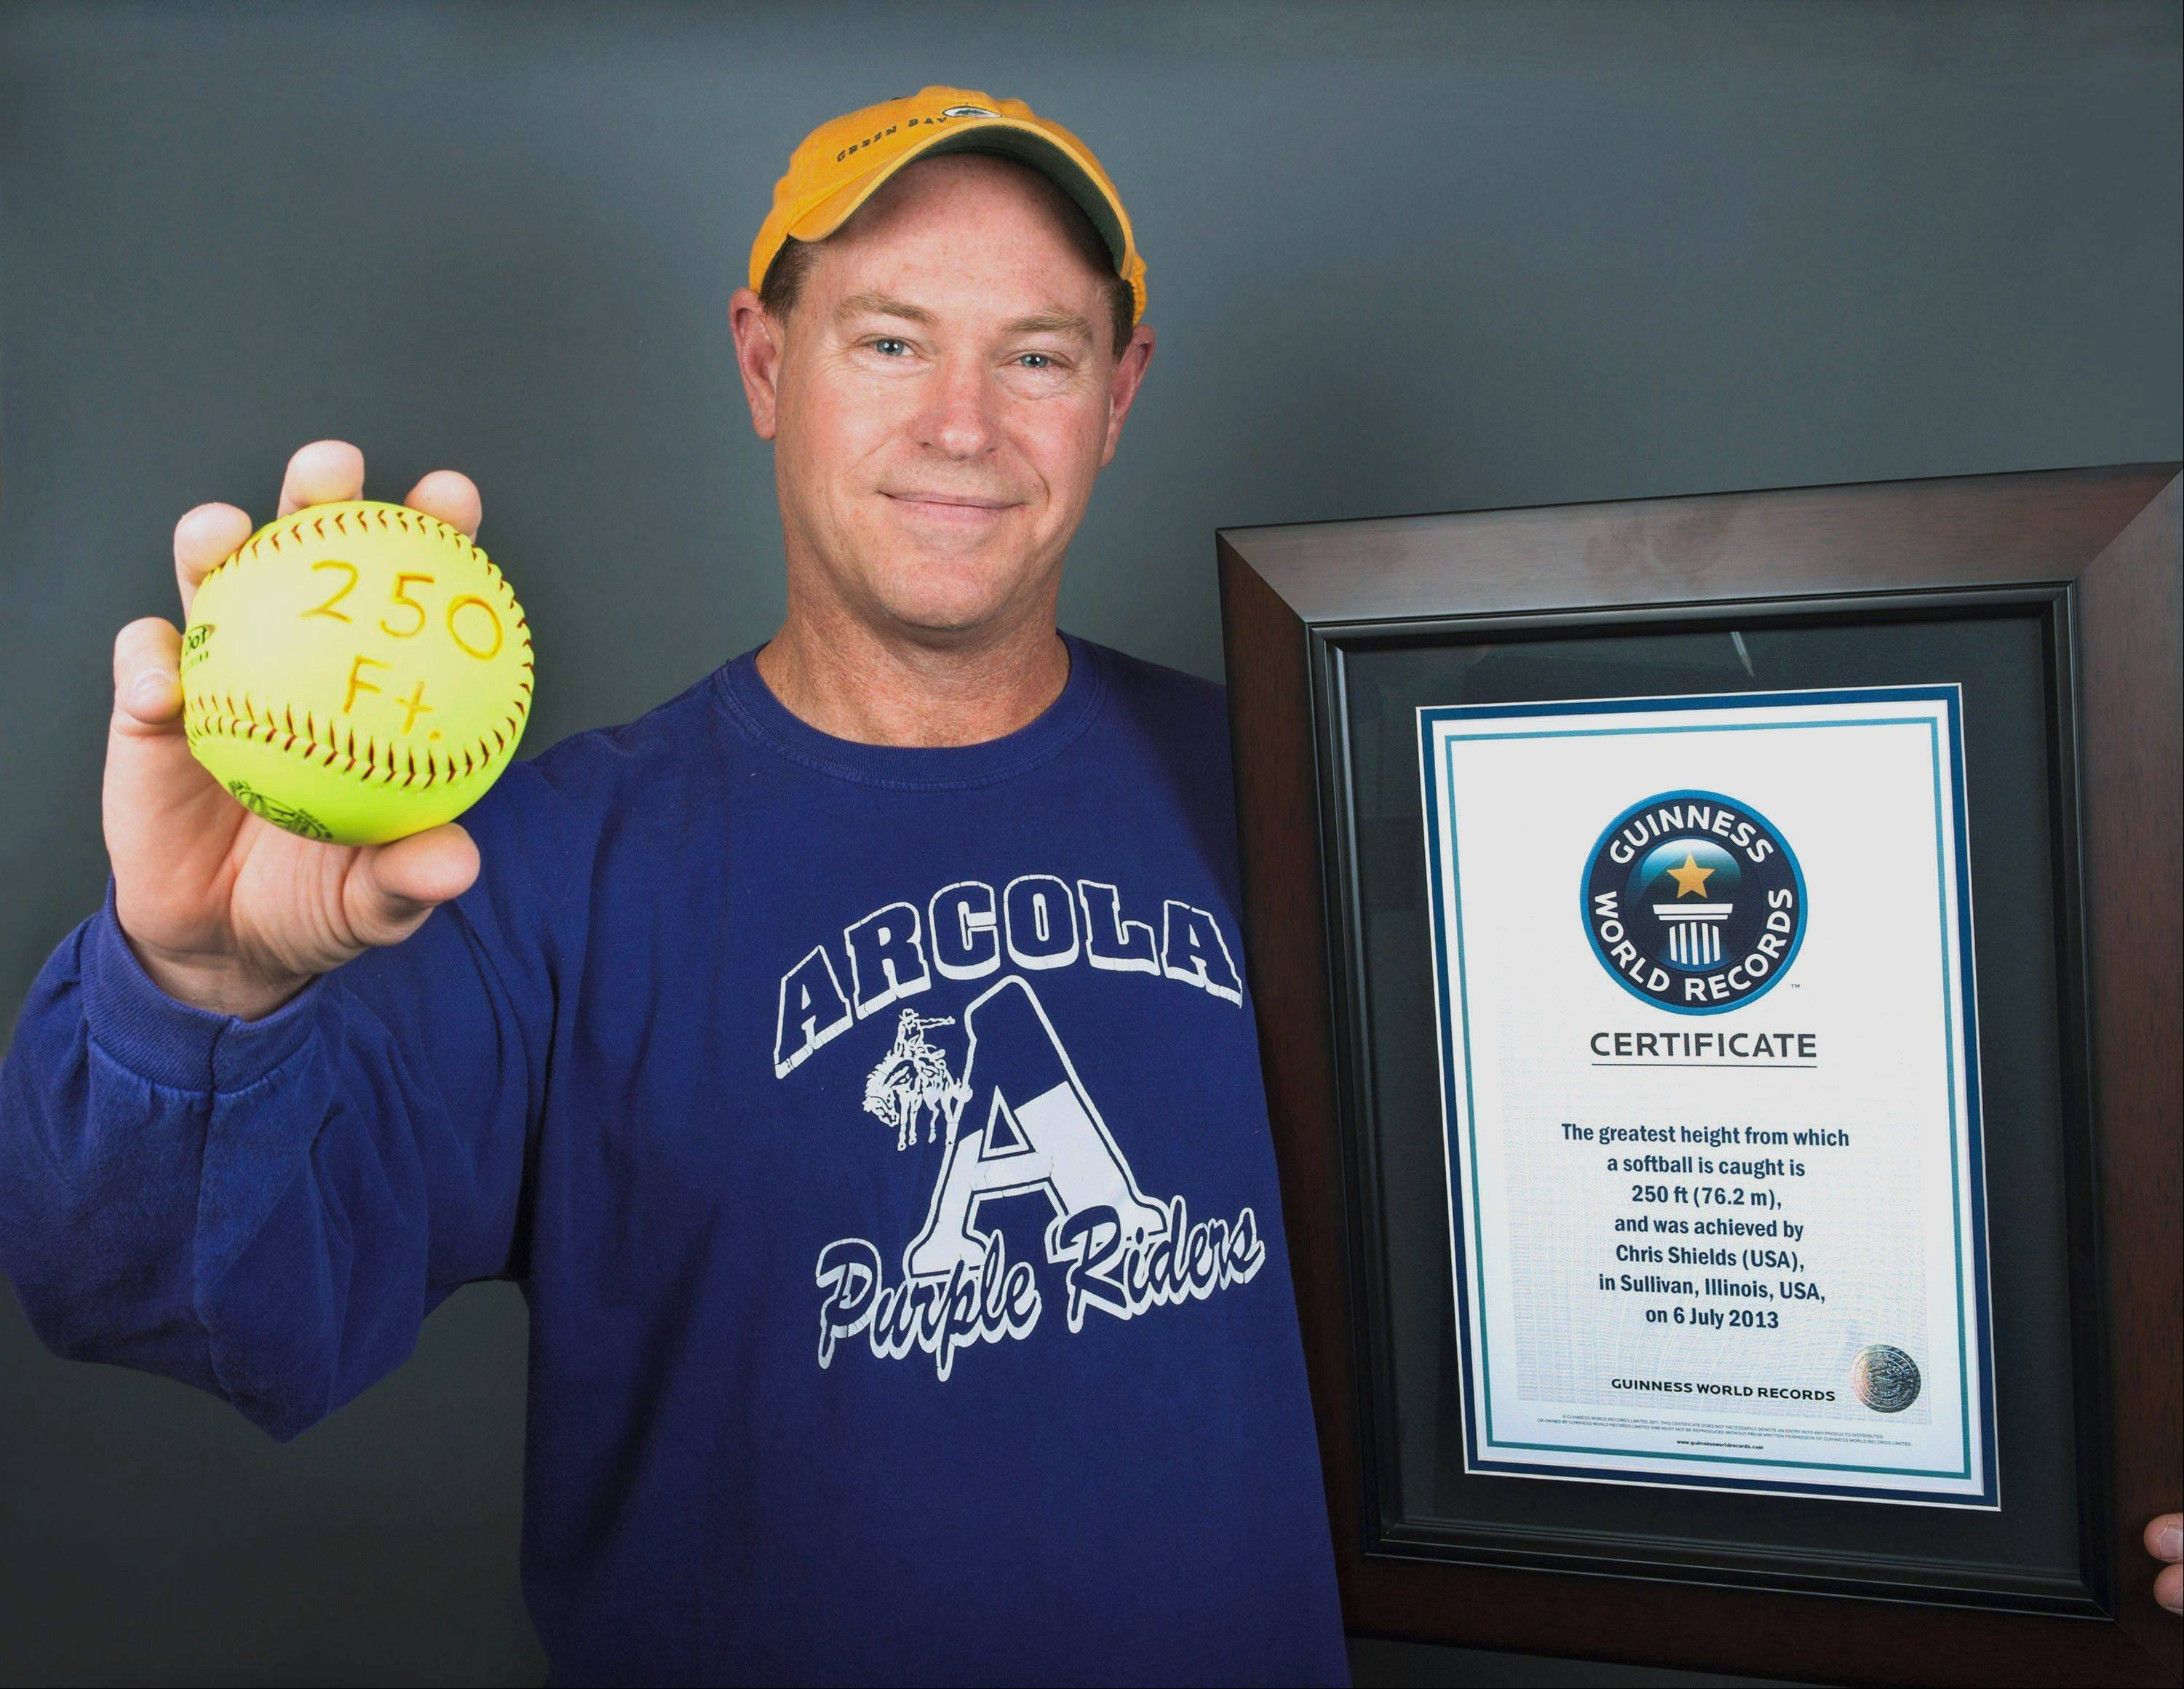 Chris Shields, 53, of Champaign poses with a plaque and softball after he set the Guinness World Records Book mark for catching a softball from the greatest height.